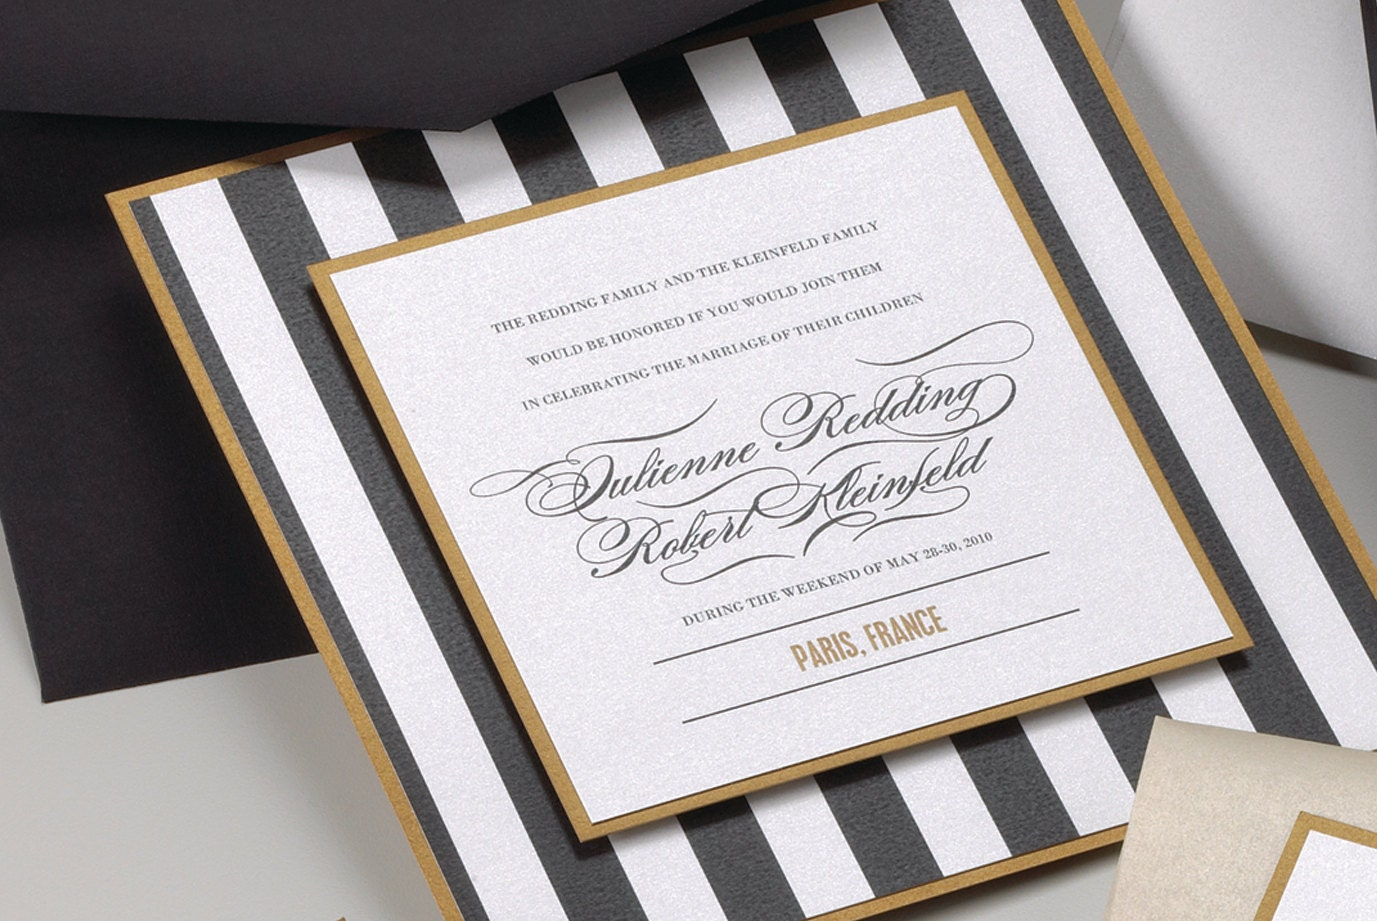 Gold And White Wedding Invitations is one of our best ideas you might choose for invitation design